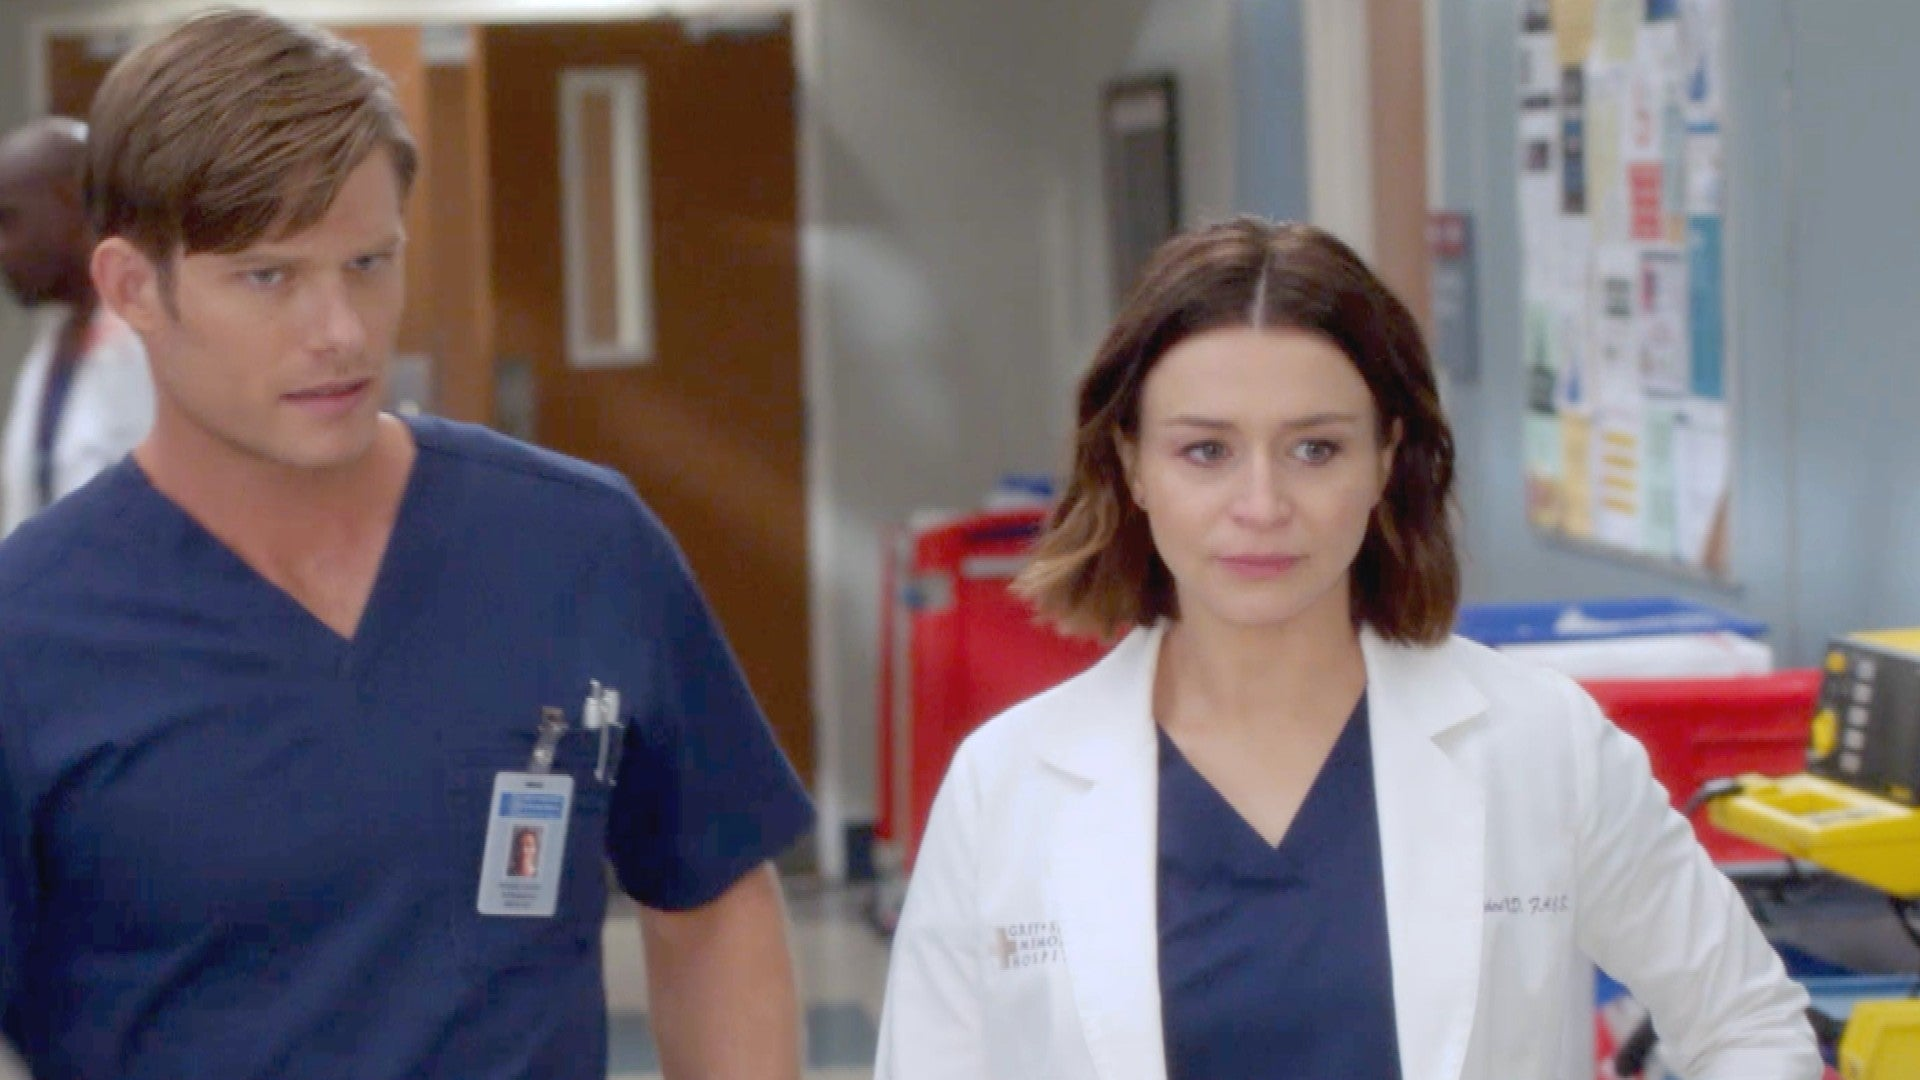 Grey S Anatomy Did The Fall Finale Set Up Major Character Deaths Our Biggest Questions Entertainment Tonight